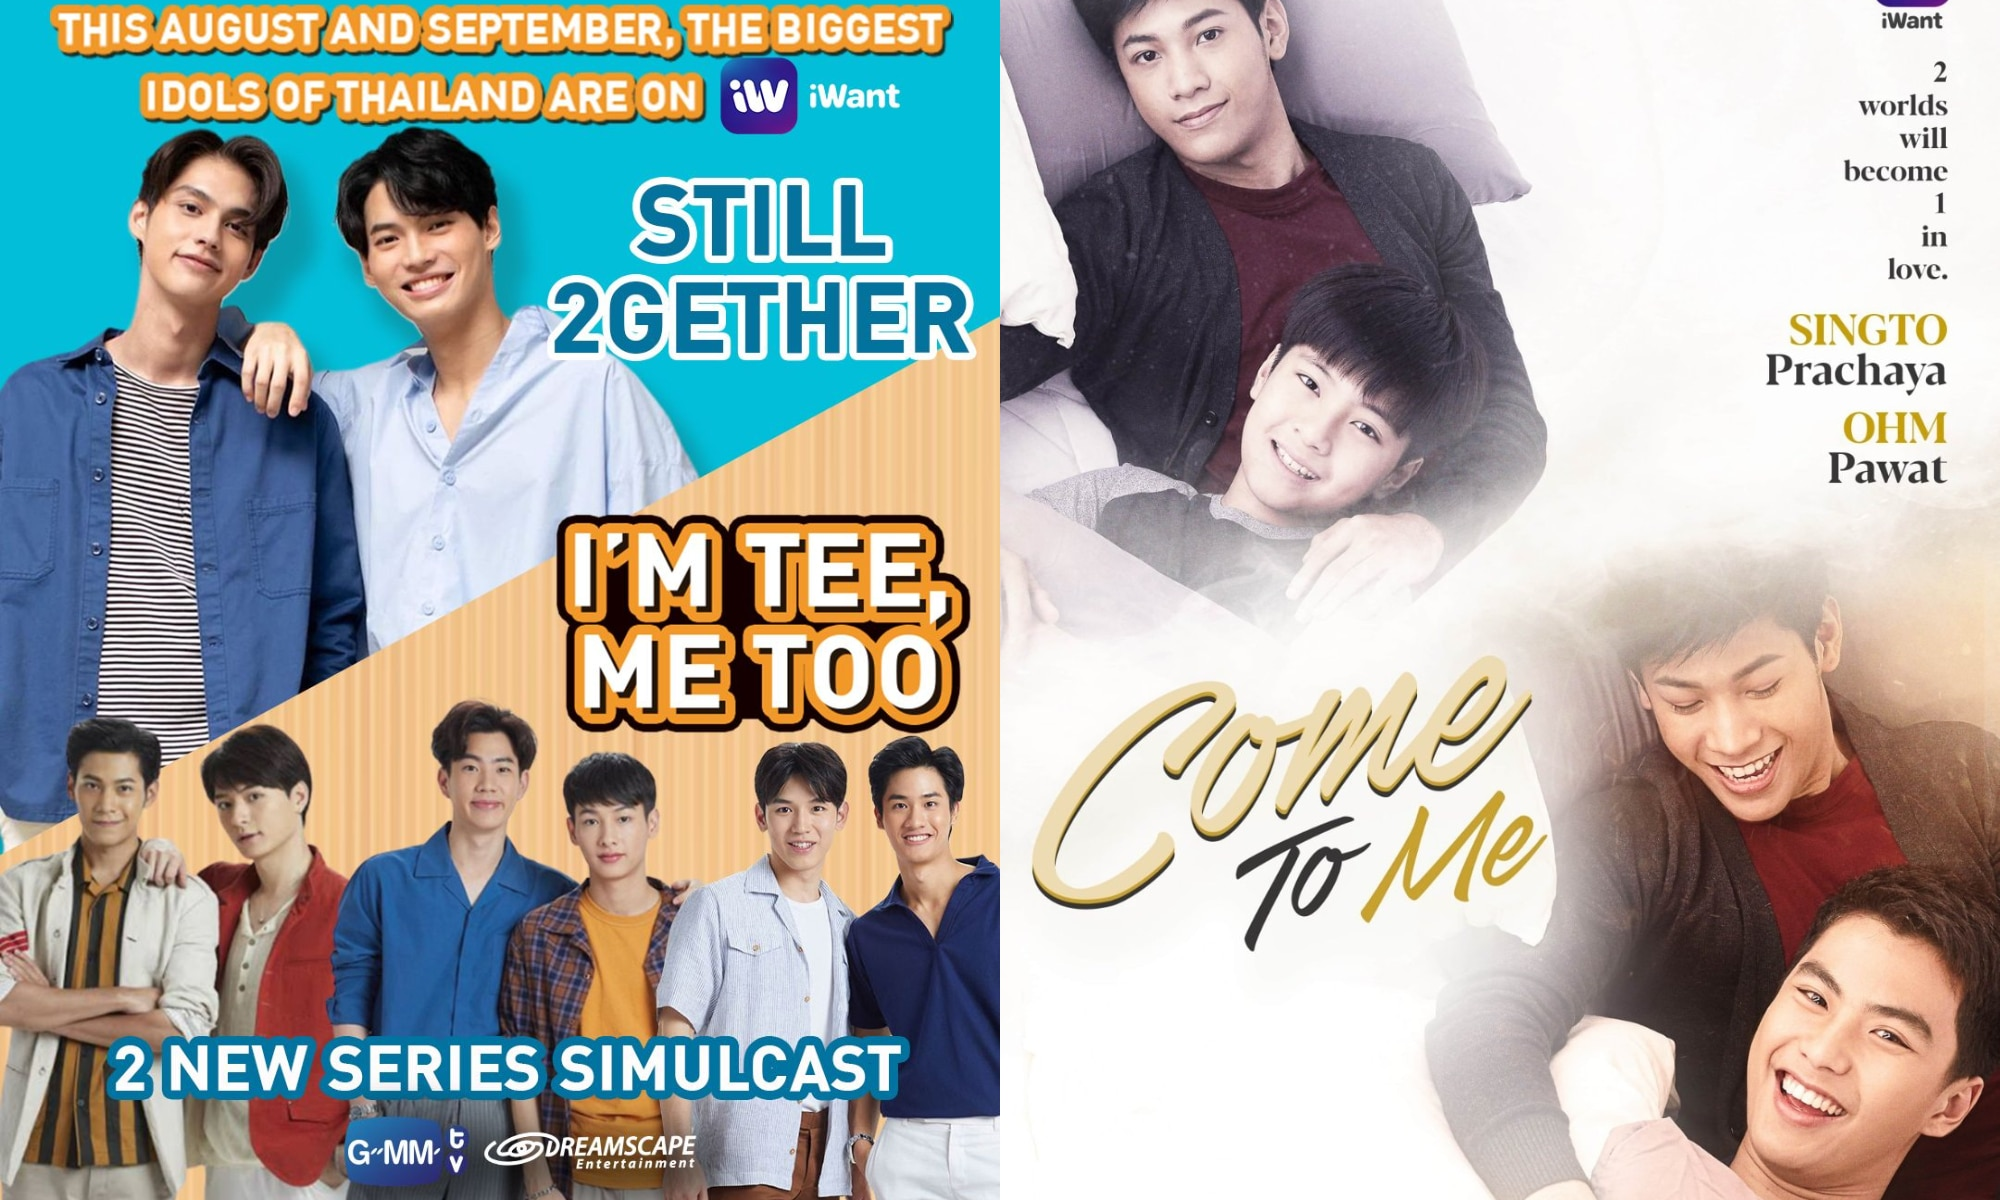 """Filipino-dubbed Thai series """"Still 2gether,"""" """"Come To Me,"""" and """"I'm Tee Me Too,"""" landing soon on iWant"""